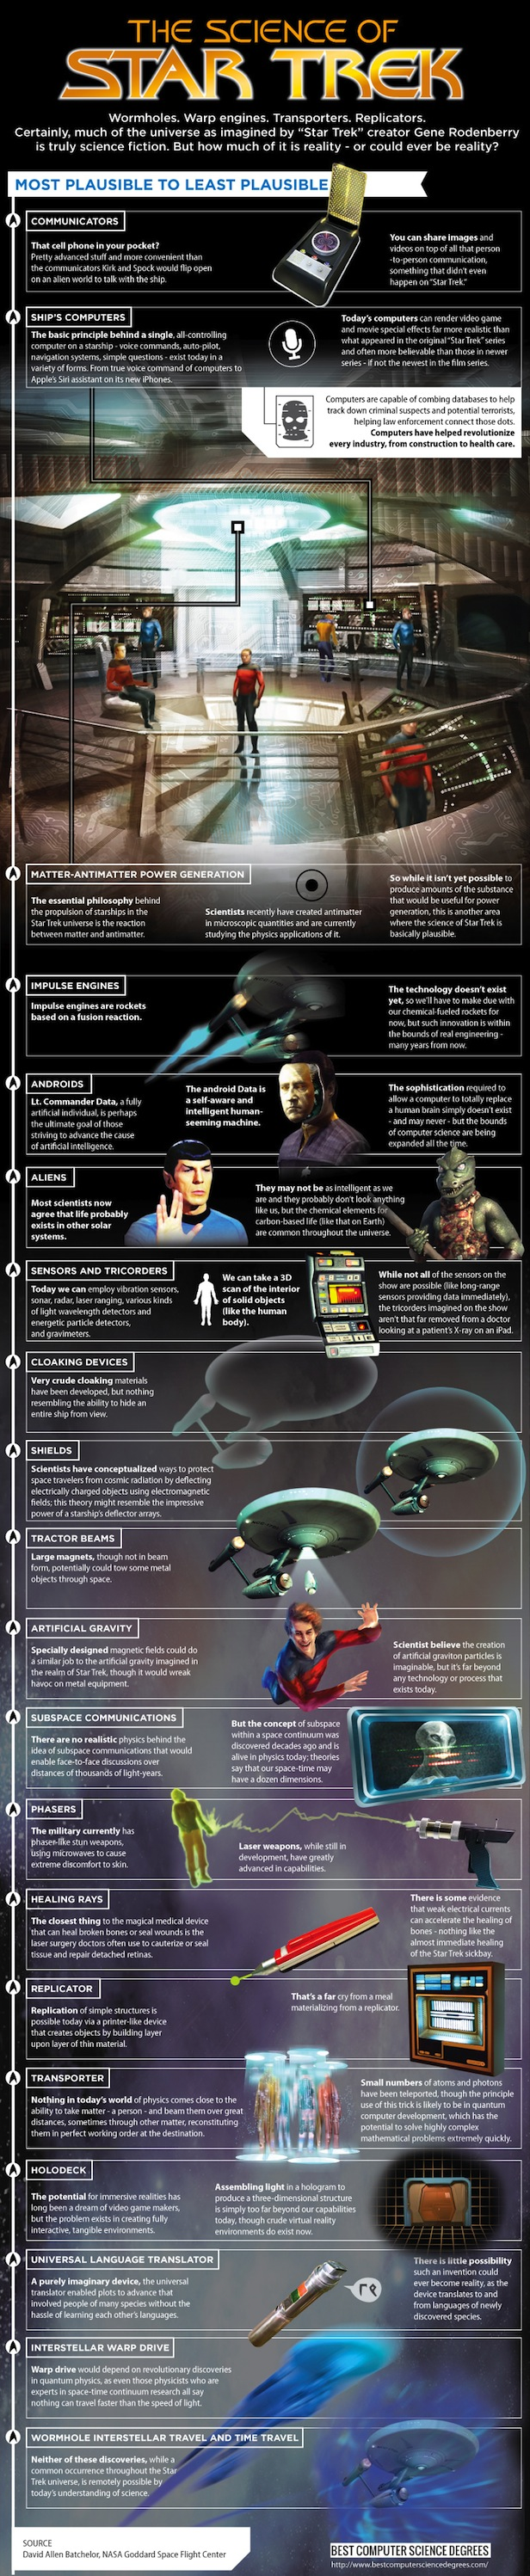 The-Science-Of-Star-Trek-infographic